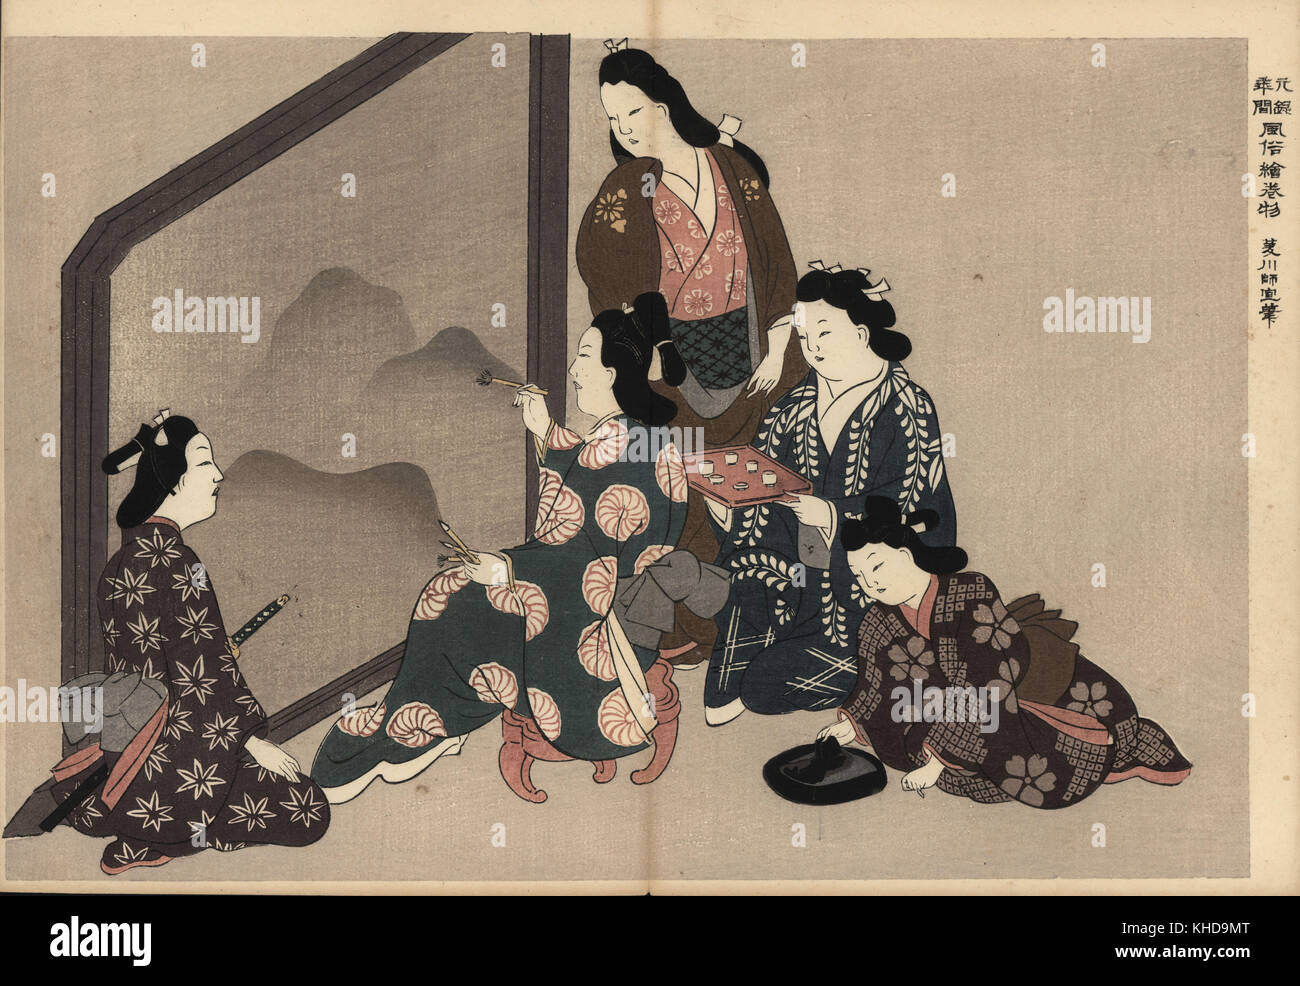 Courtesans painting a large sumi-e (ink-wash painting). A samurai customer watches, and a kamuro maid prepares the - Stock Image